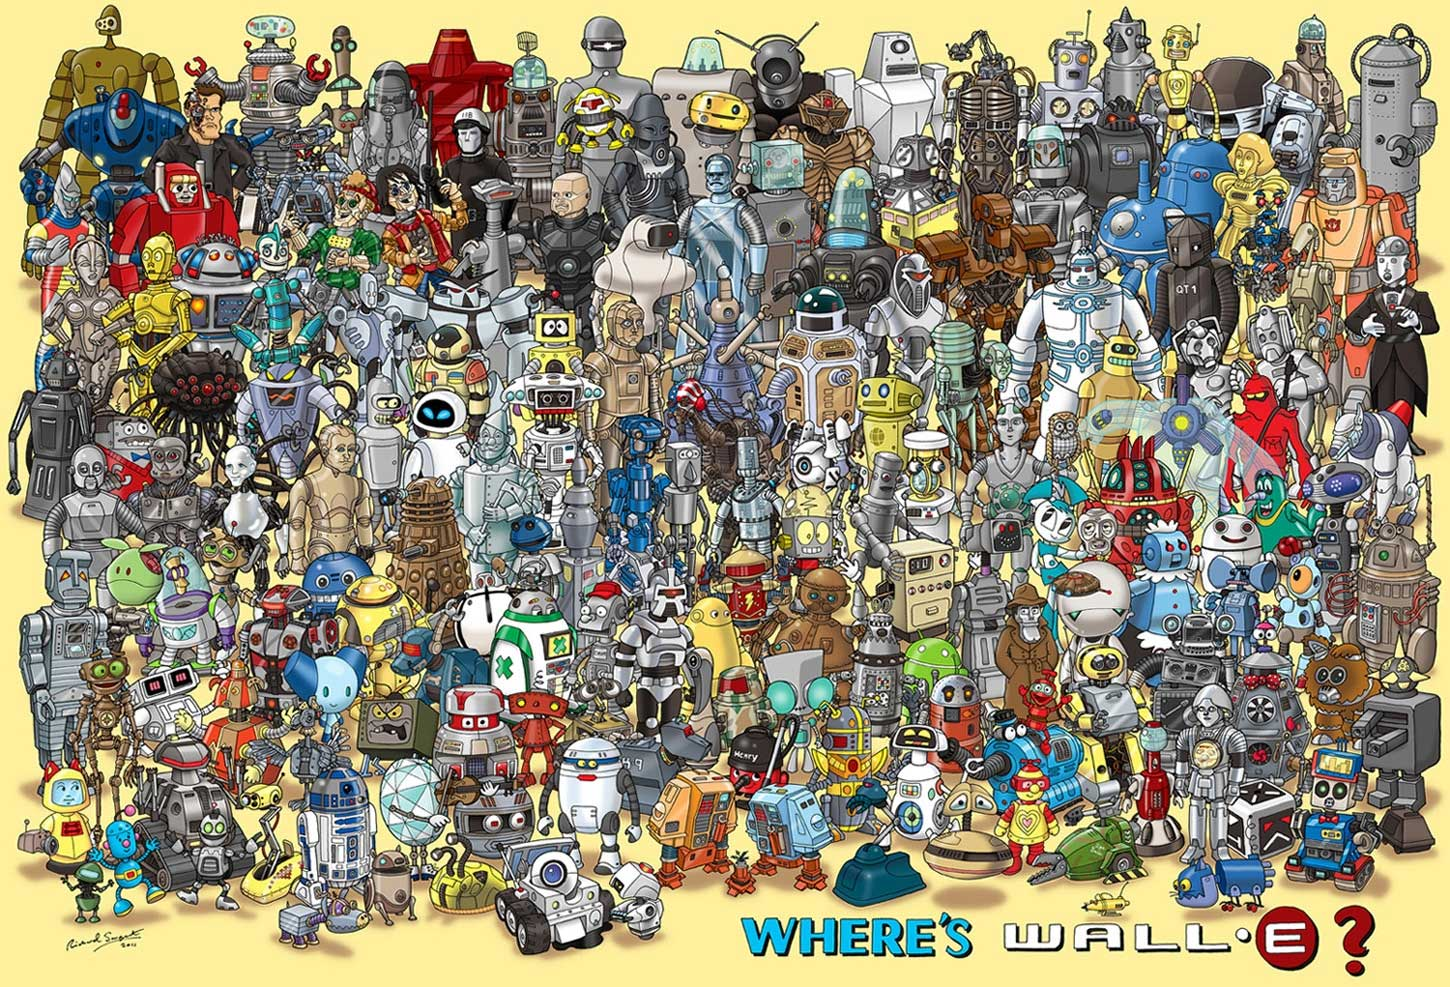 Beloved Android Hidden Among 180 Famous Robots in Illustration